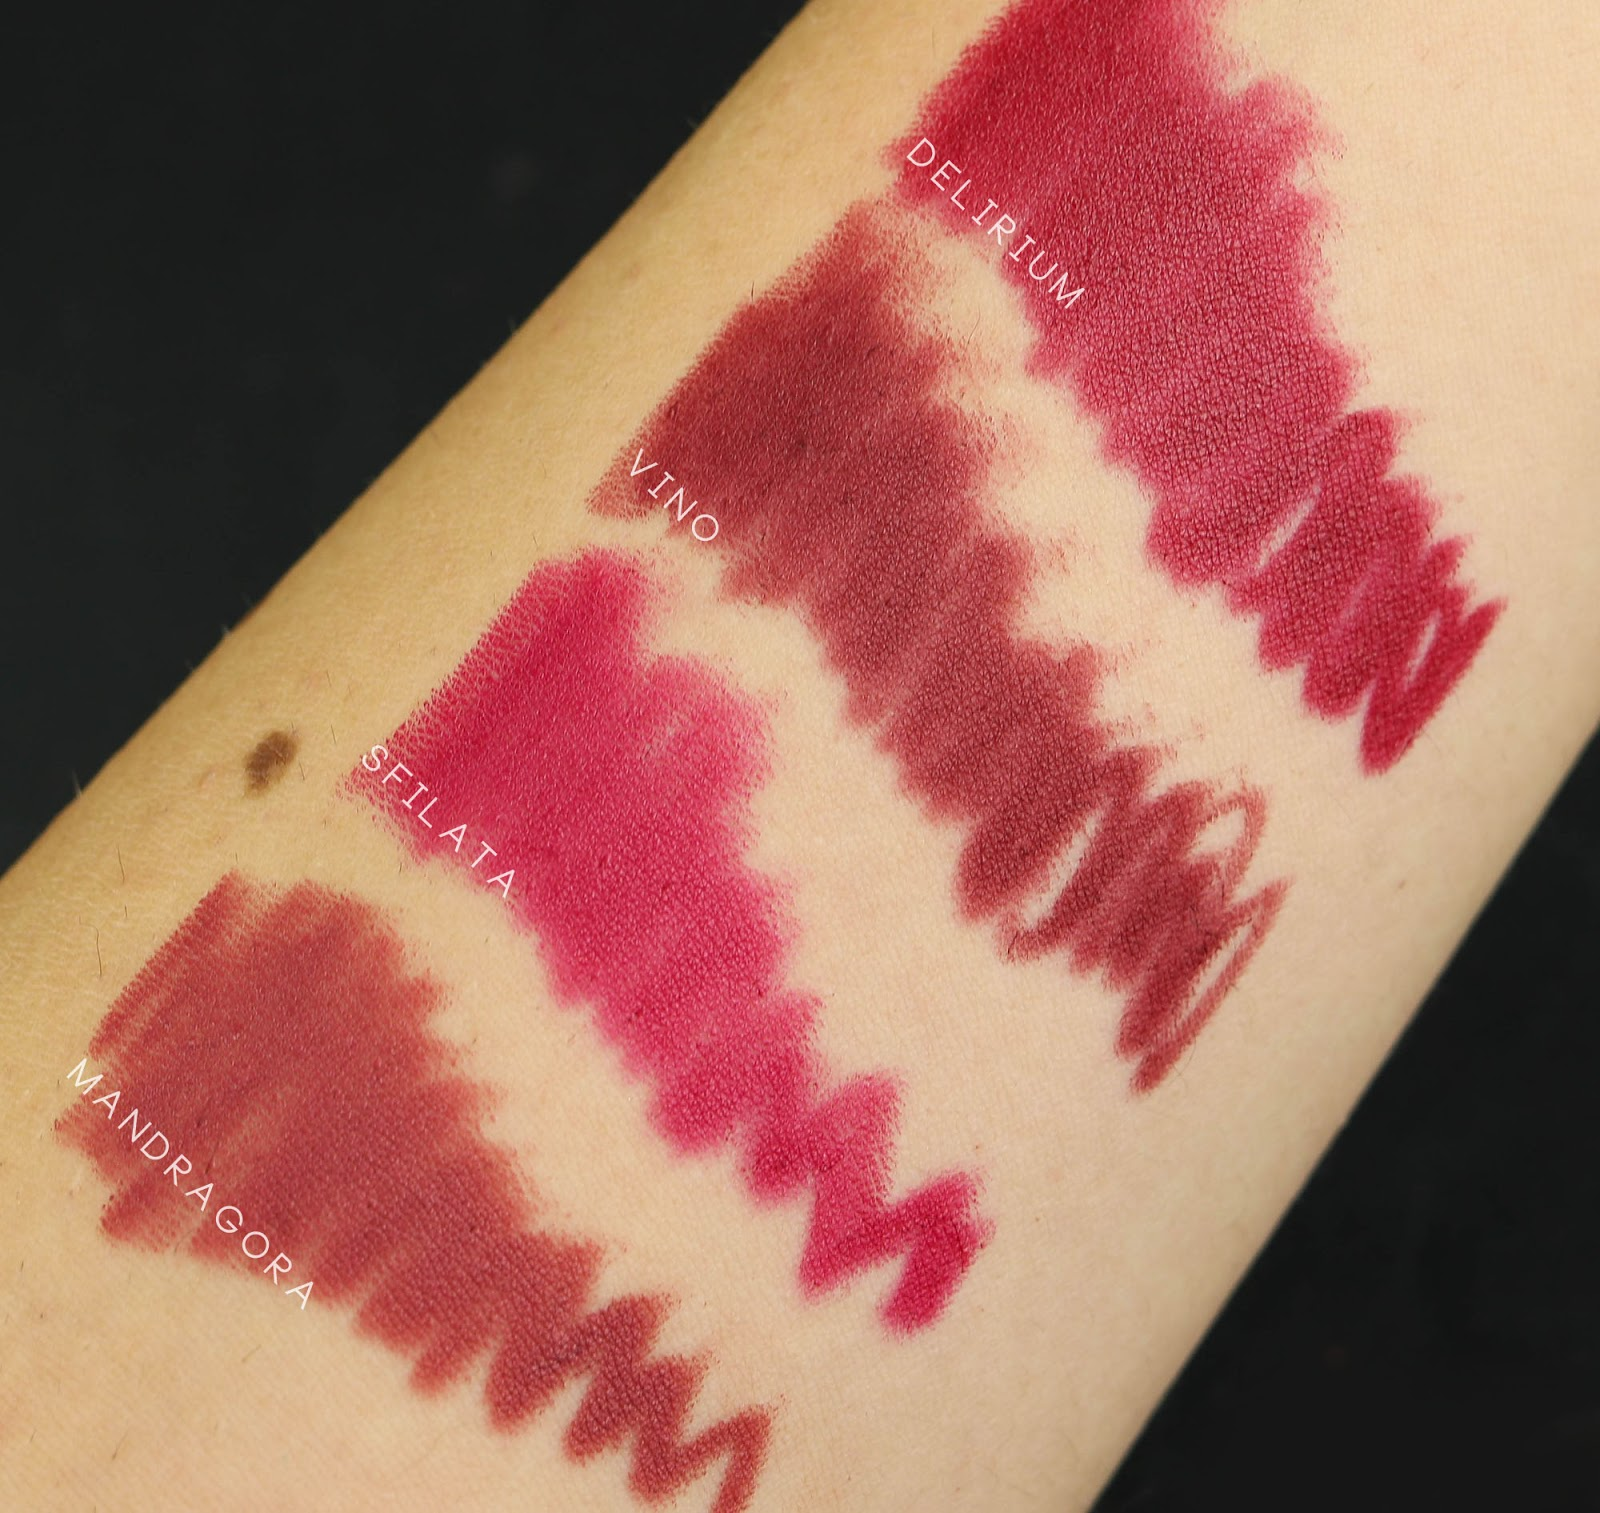 Neve Neogothic Mandragora swatch review